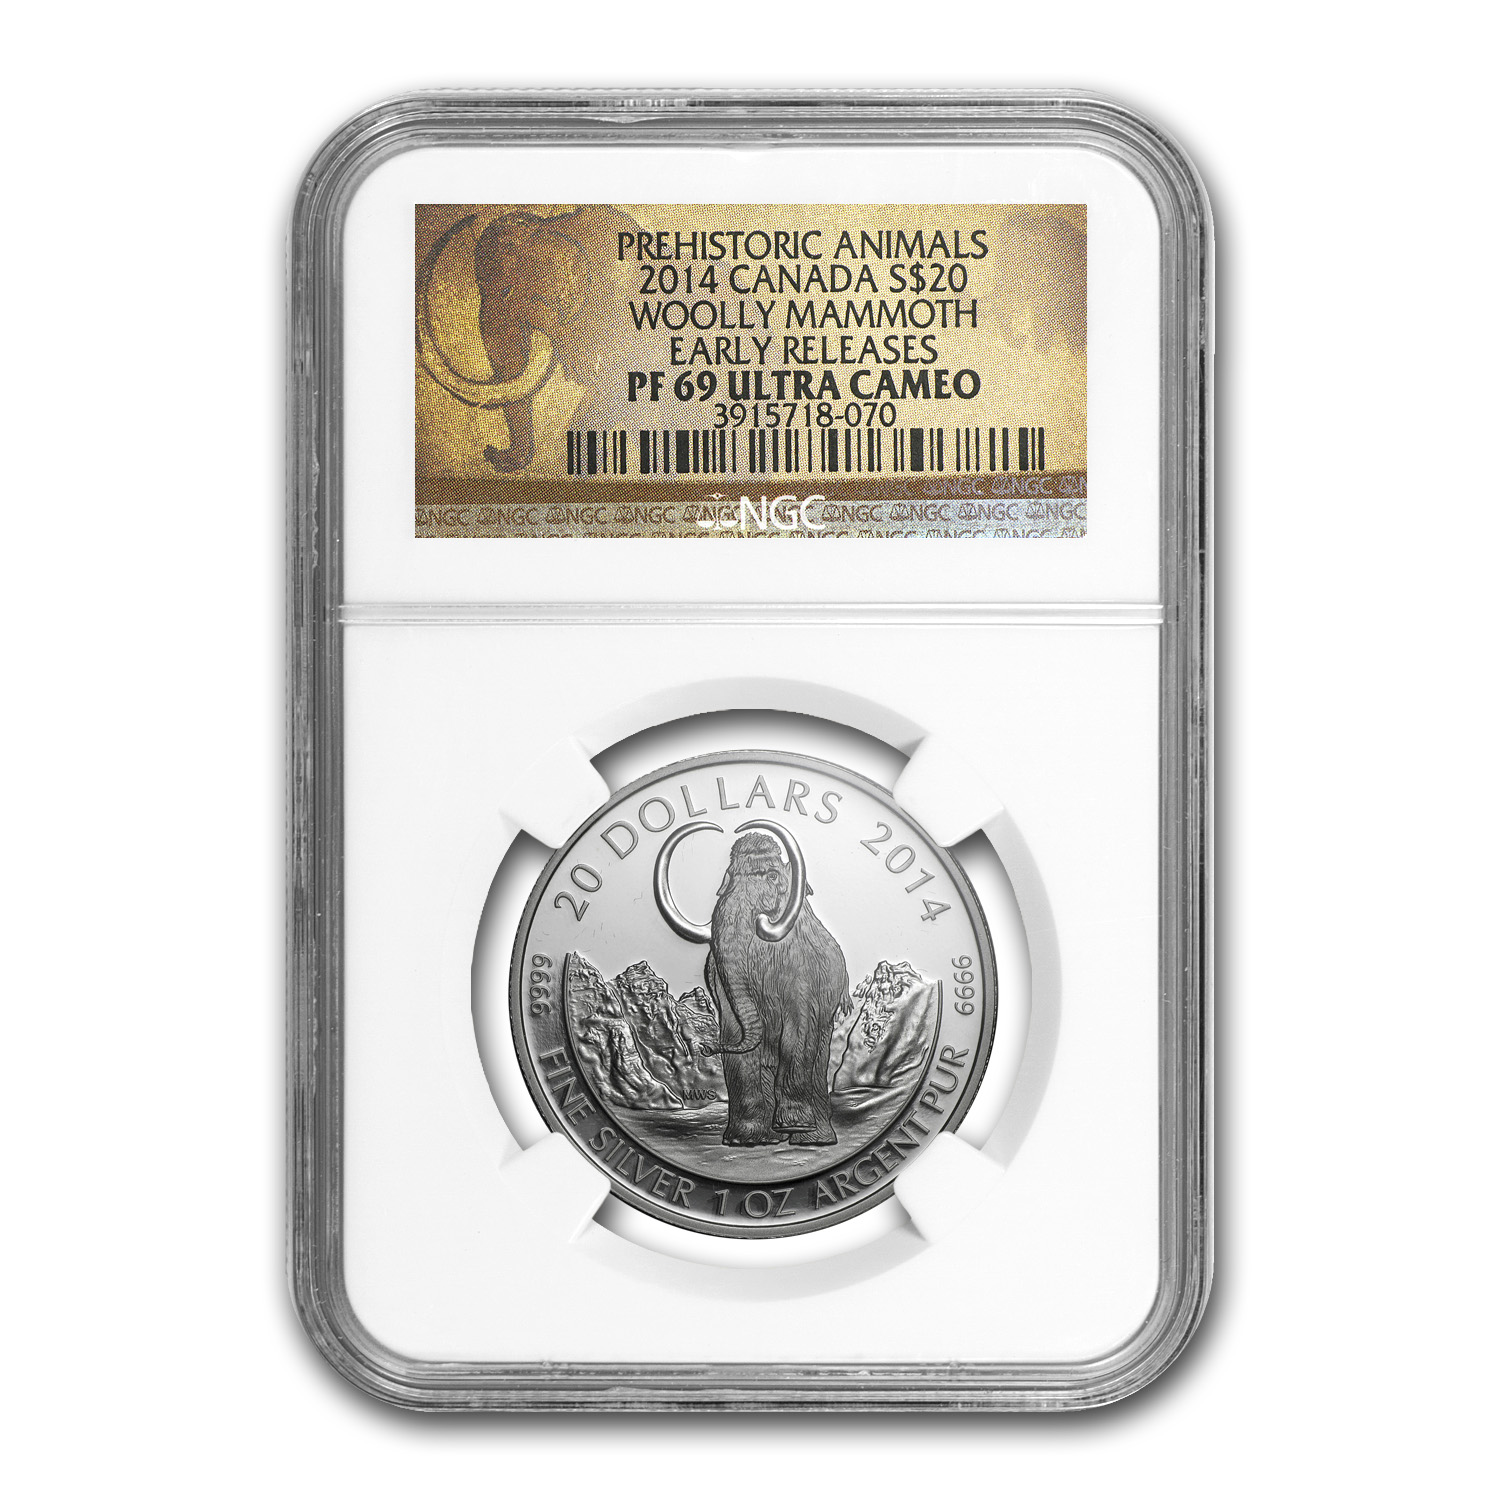 2014 Canada 1 oz Proof Silver $20 The Woolly Mammoth PF-69 NGC